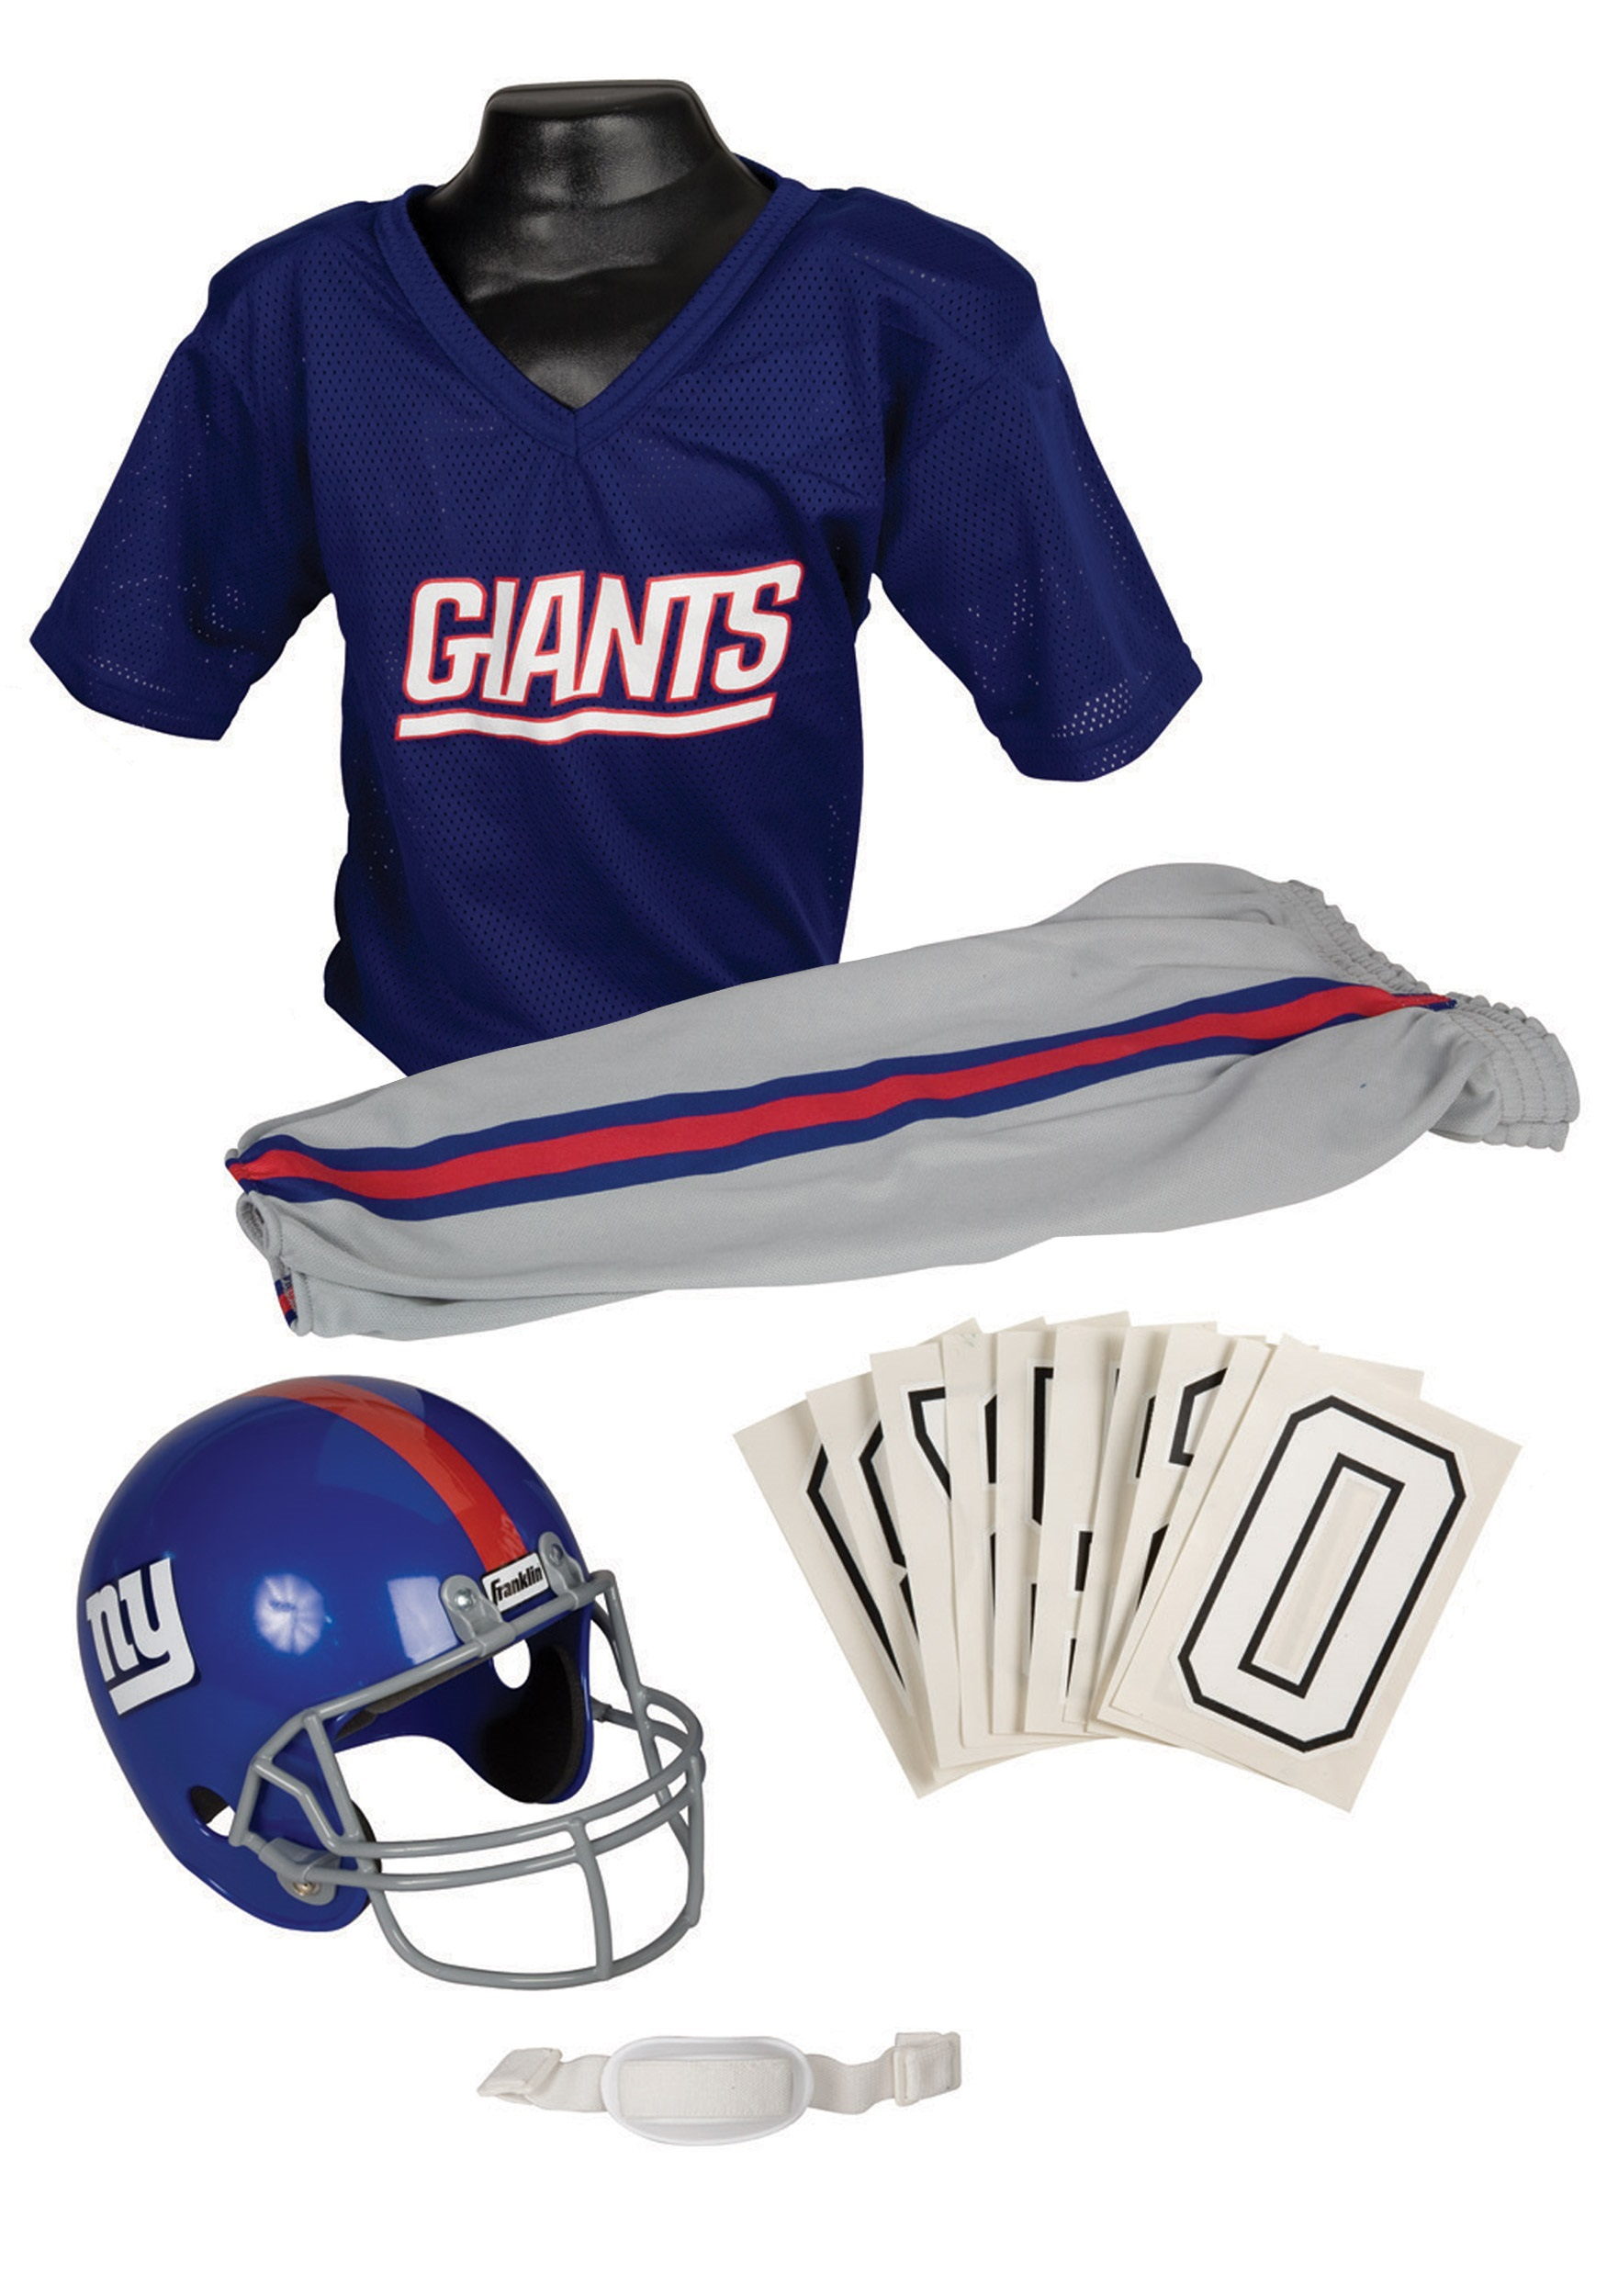 NY Giants NFL Uniform Costume 4c6dff67c